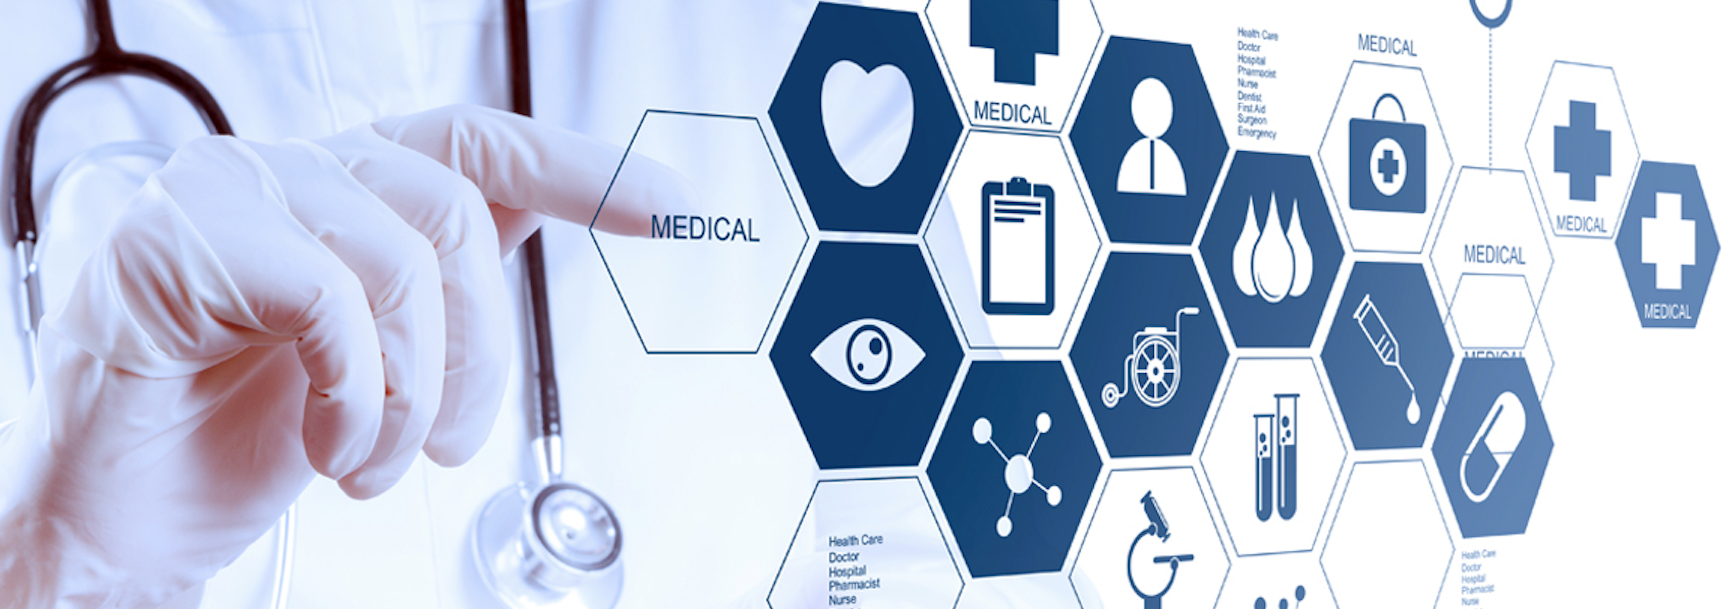 Digital healthcare considerations for corporate affairs and communications